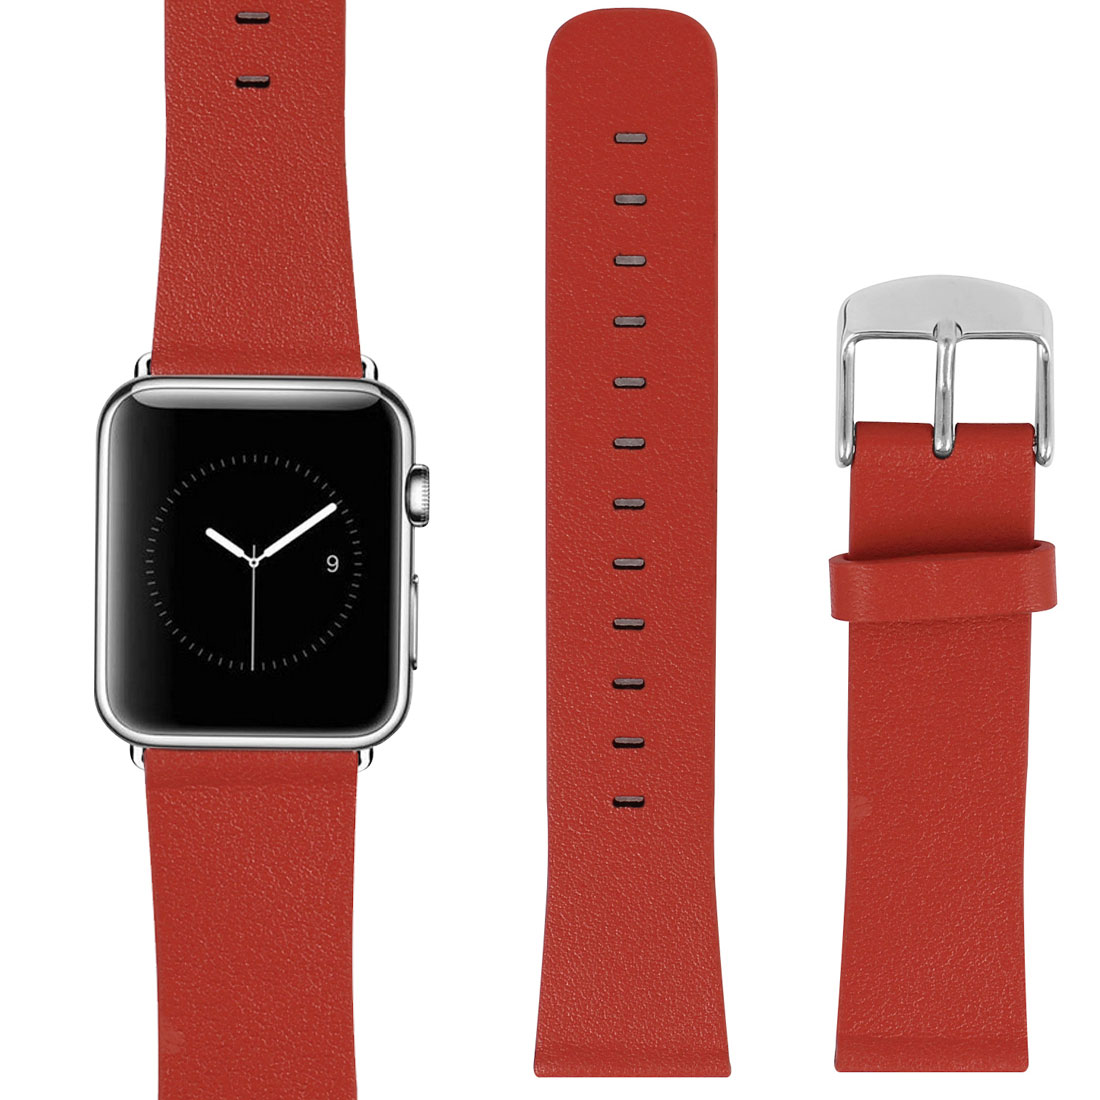 PU Leather Classic Buckle Watchband Strap Red for Apple Watch 38mm